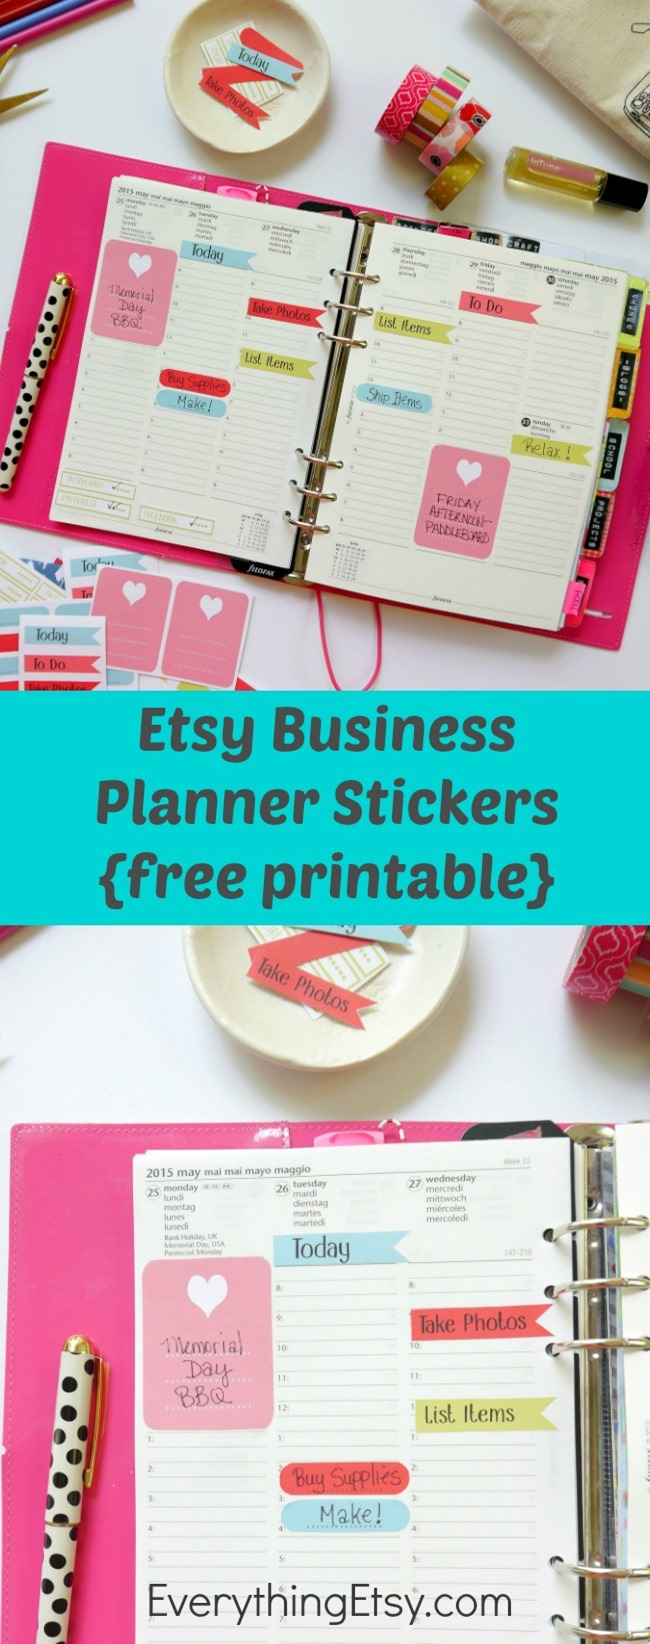 Etsy Business Planner Stickers - Free Printable for Filofax on ...